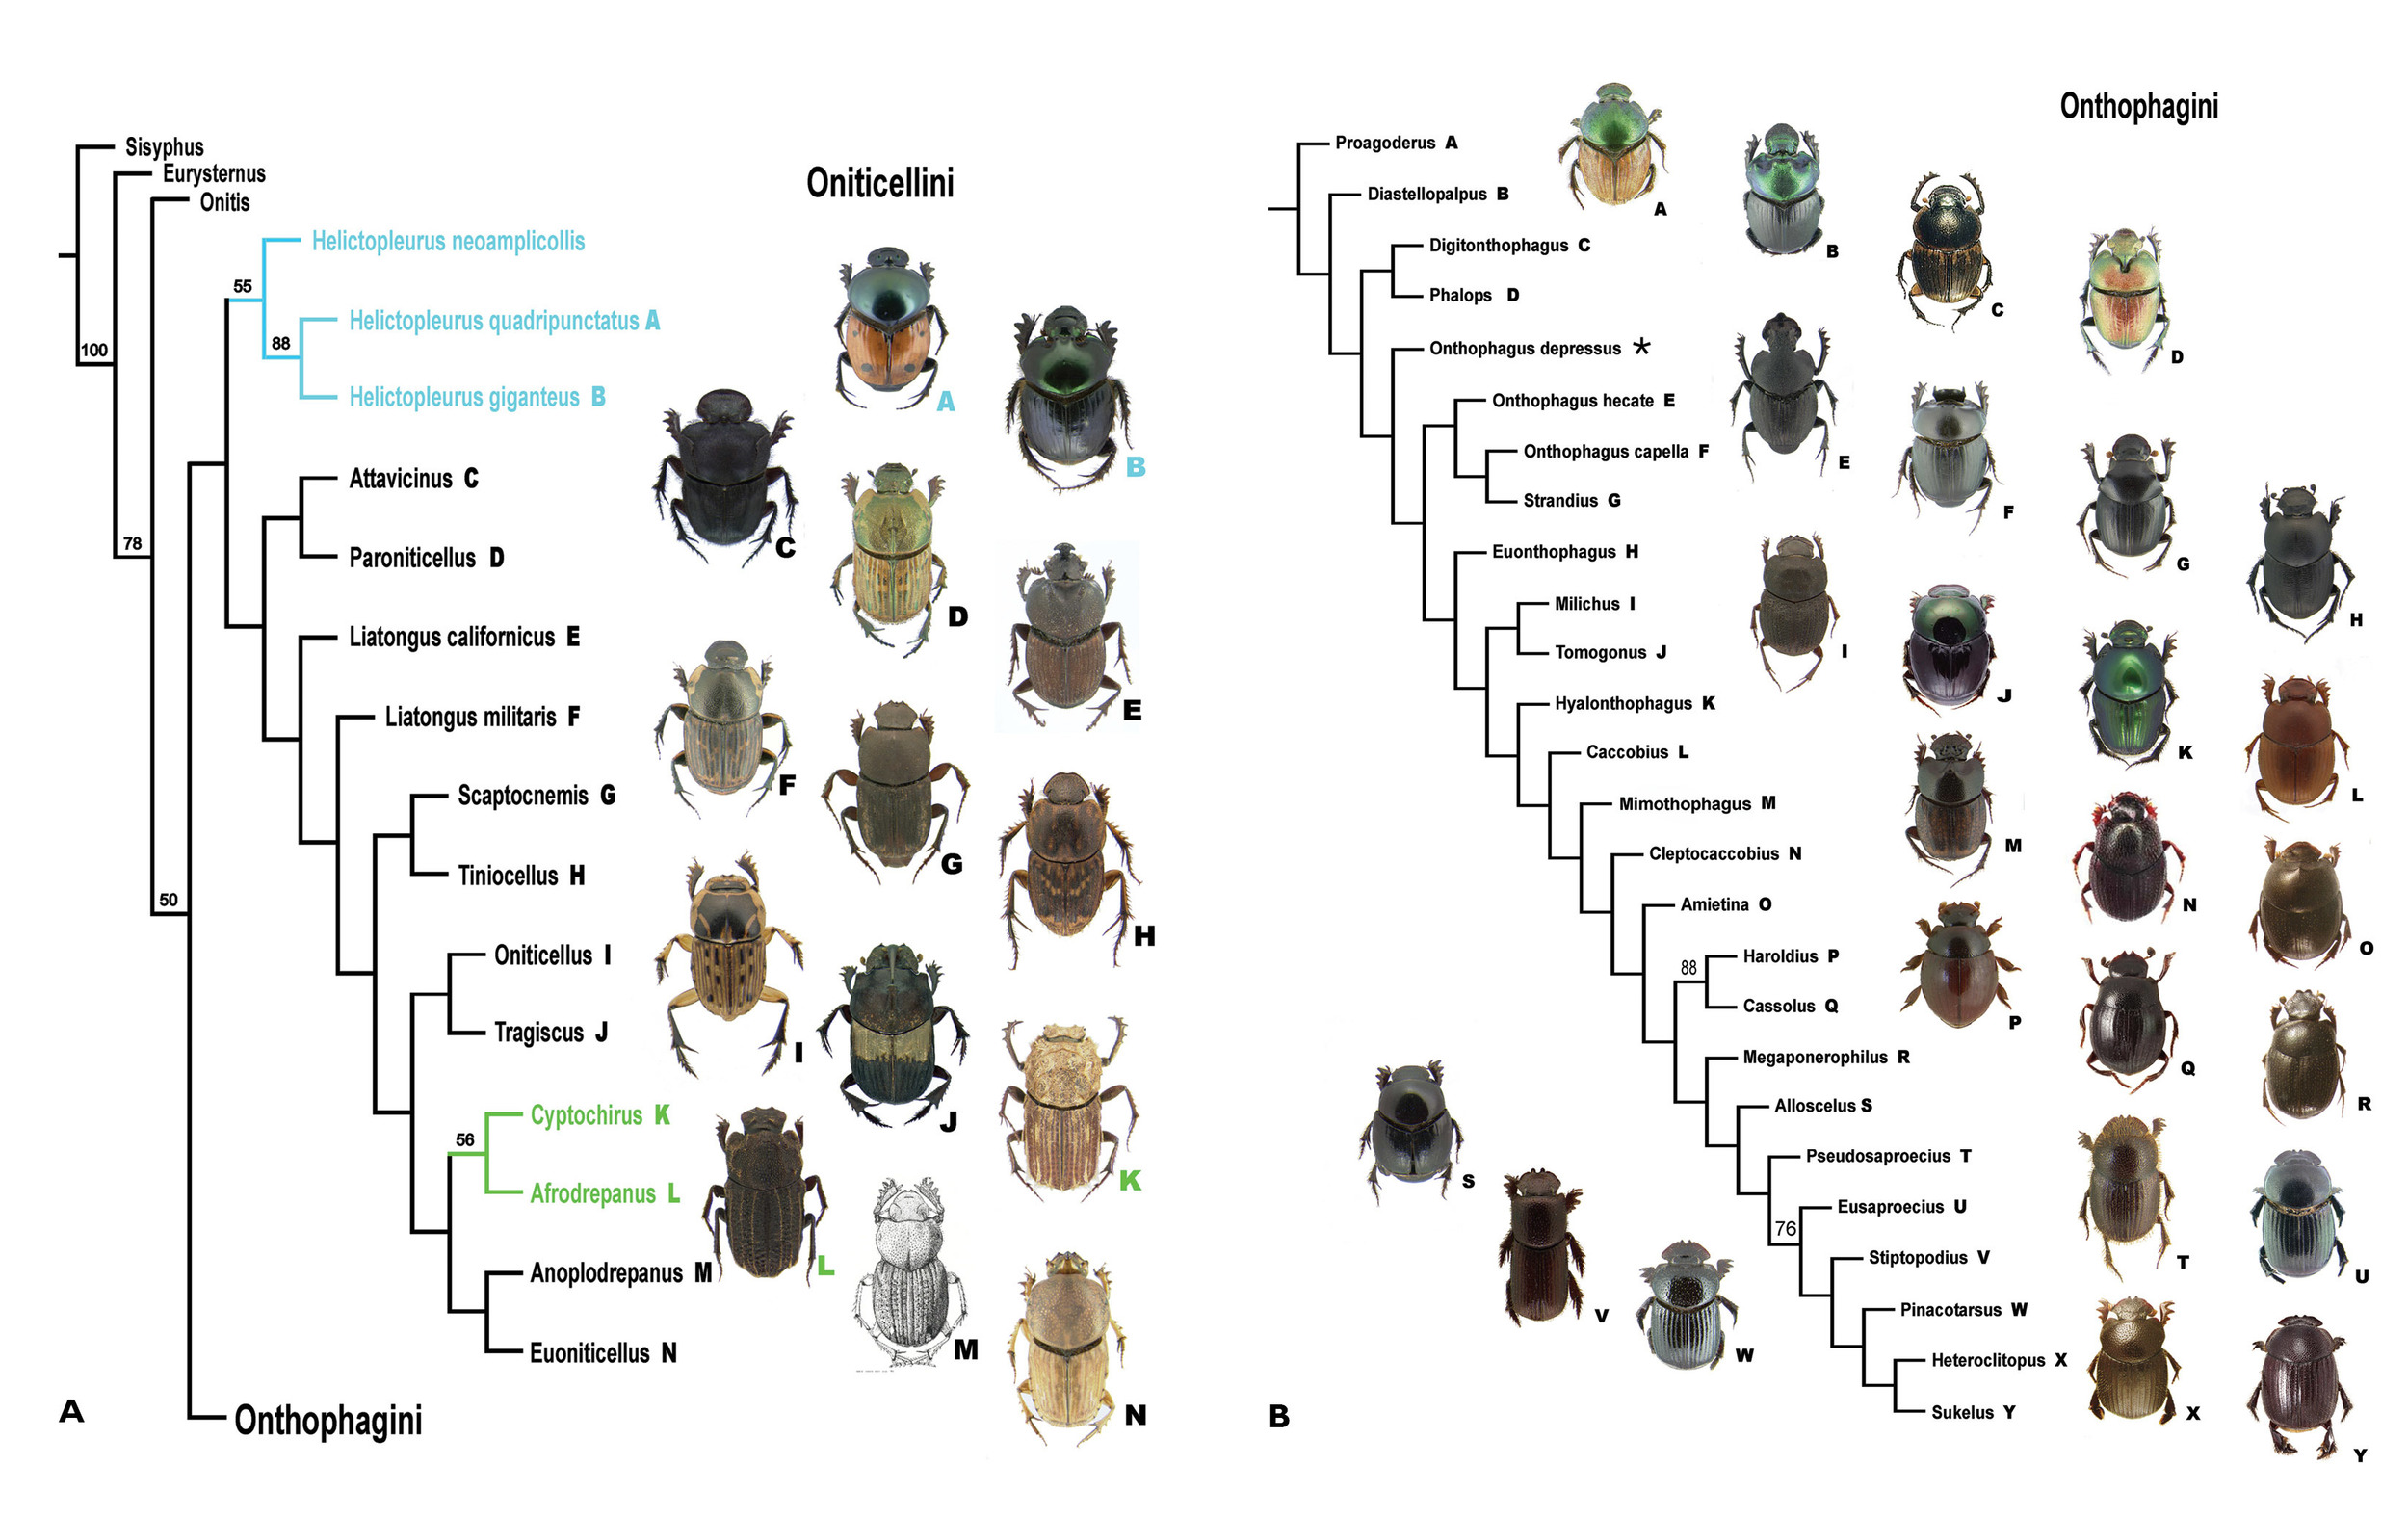 A, B Cladogram found using Piwe weighting with K values of 8-10. This topology is considered to be the best supported in this study. Bootstrap values above 50% found for nodes indicated. A Oniticellini. B Onthophagini. * = no taxon image | From  Philips 2016